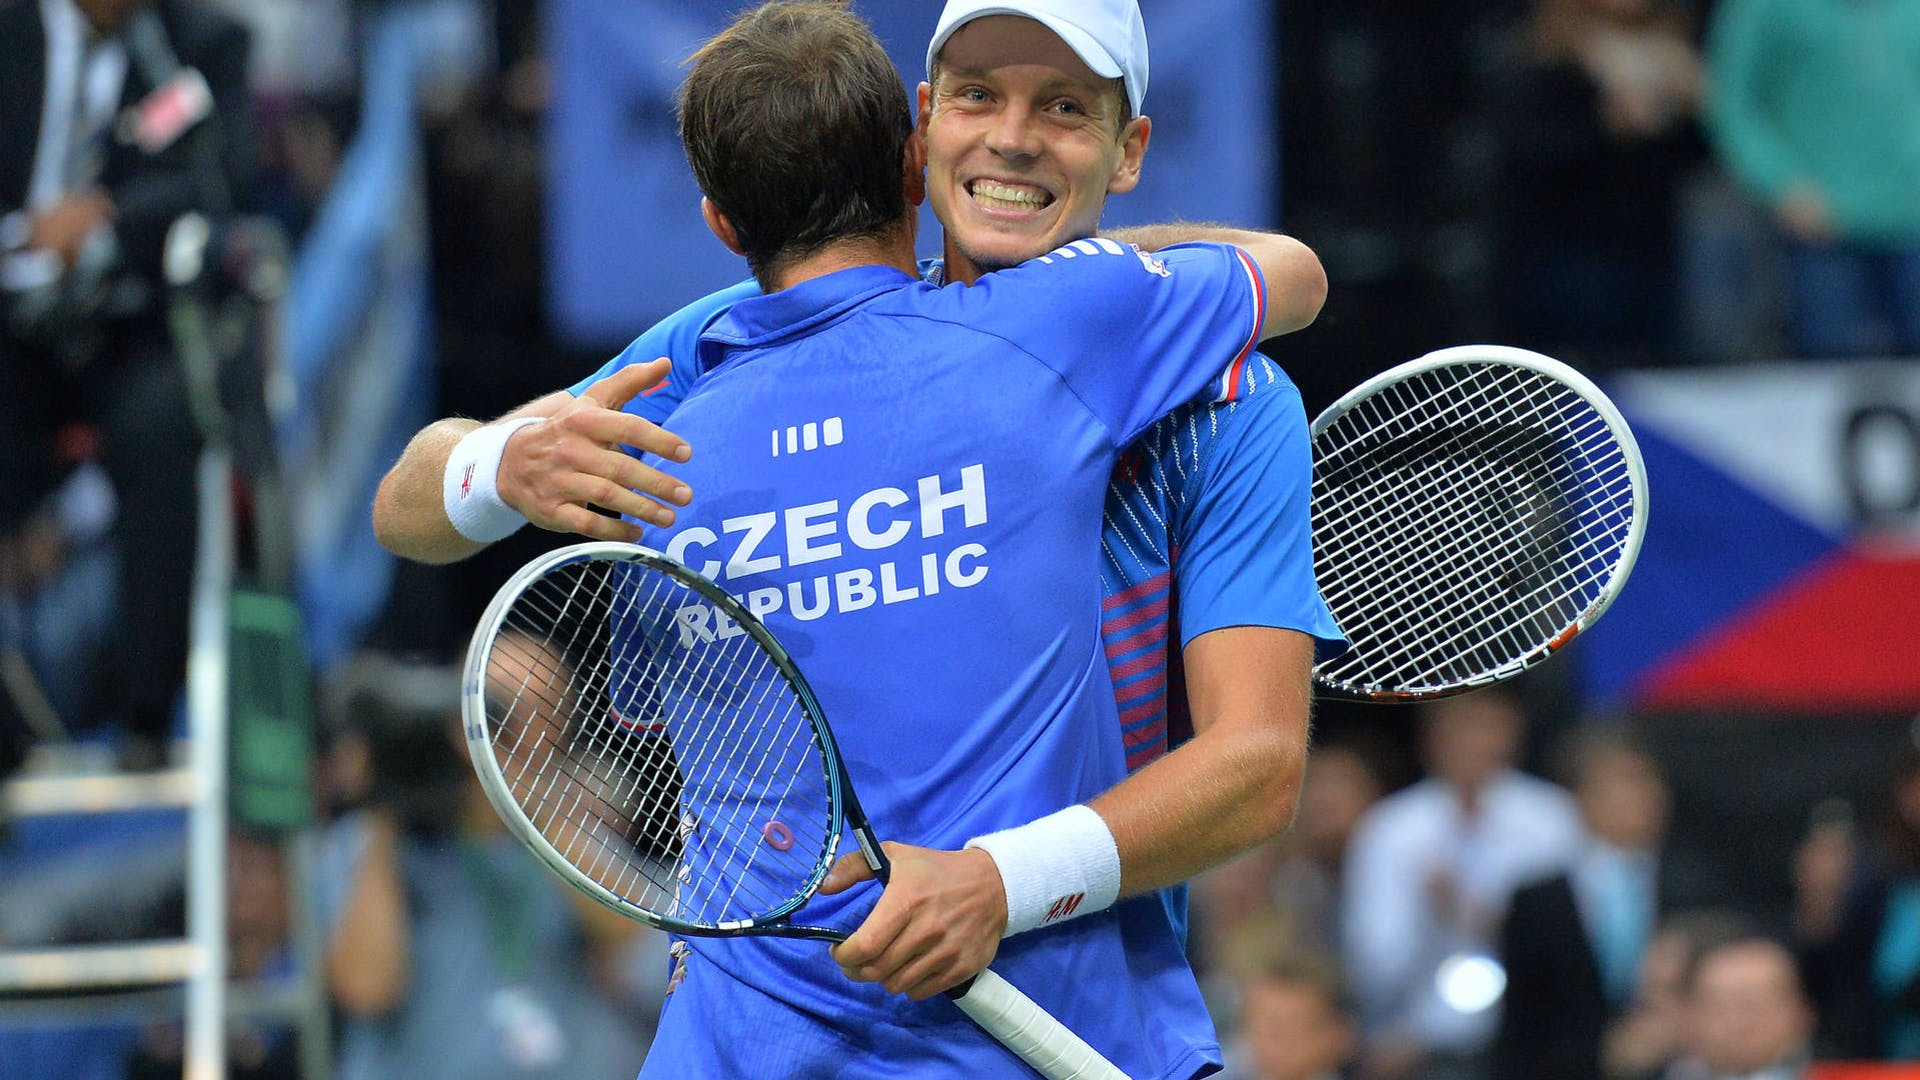 Tomas Berdych and Radek Stepanek // © Martin Sidorjak